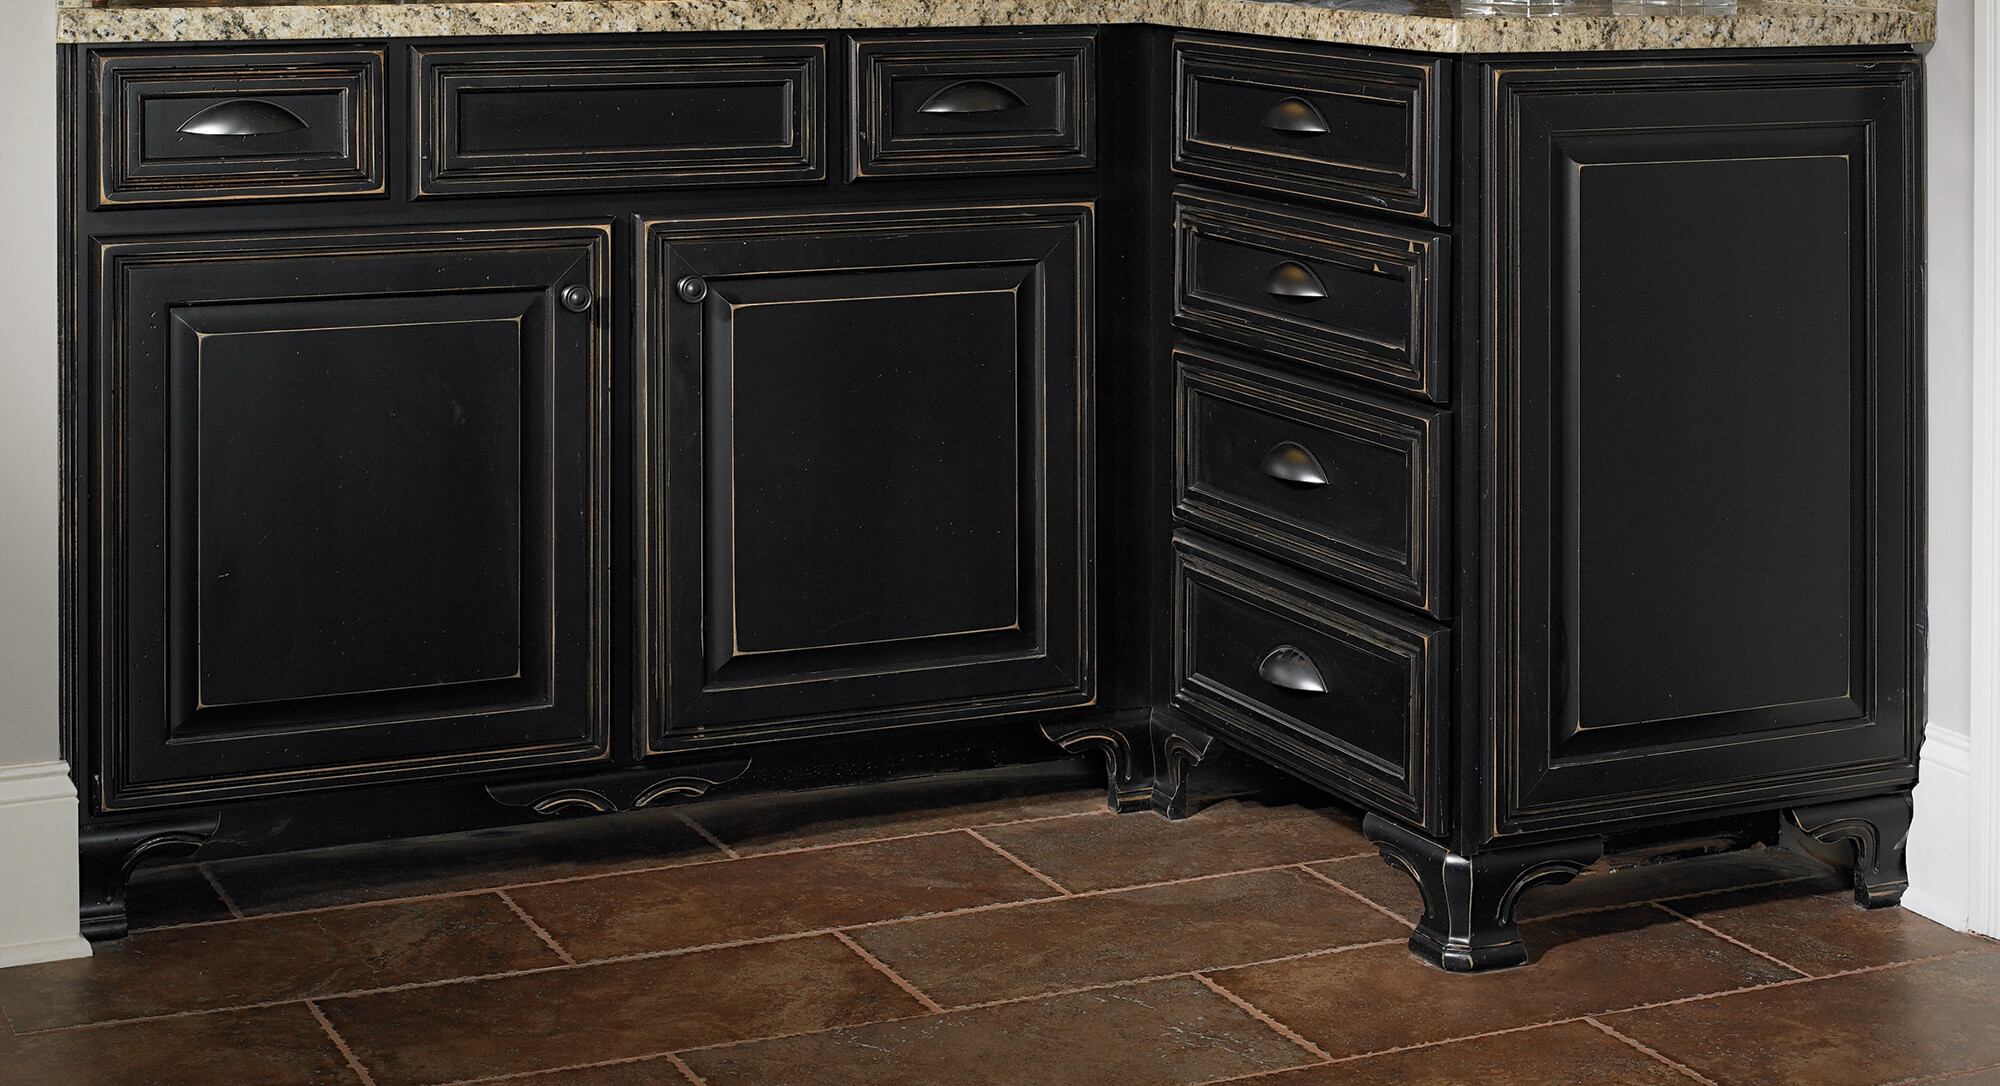 Castlewood-Pedestal-Foot-Corner-SY-PF-173-in-vanity-application